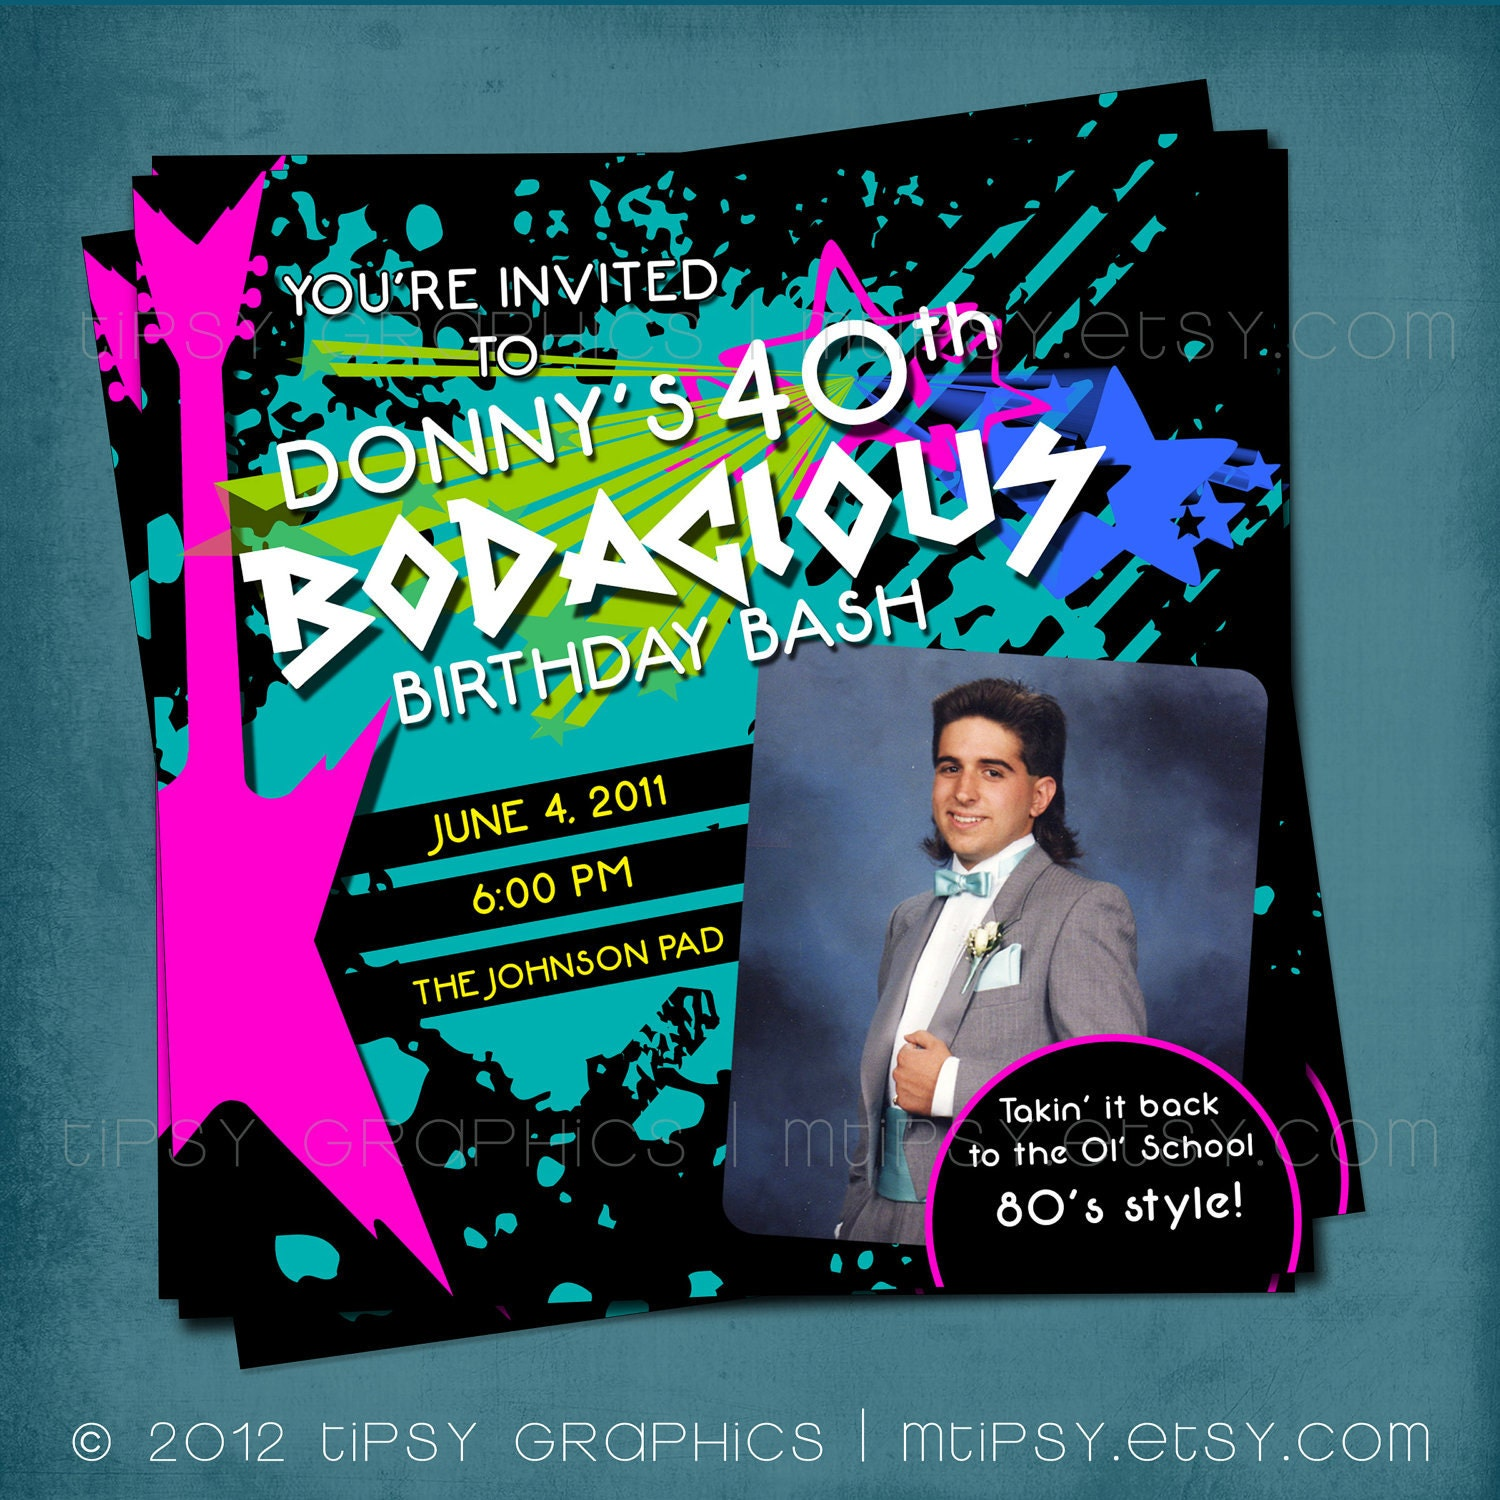 Bodacious Birthday Bash Totally Awesome s Party Invite